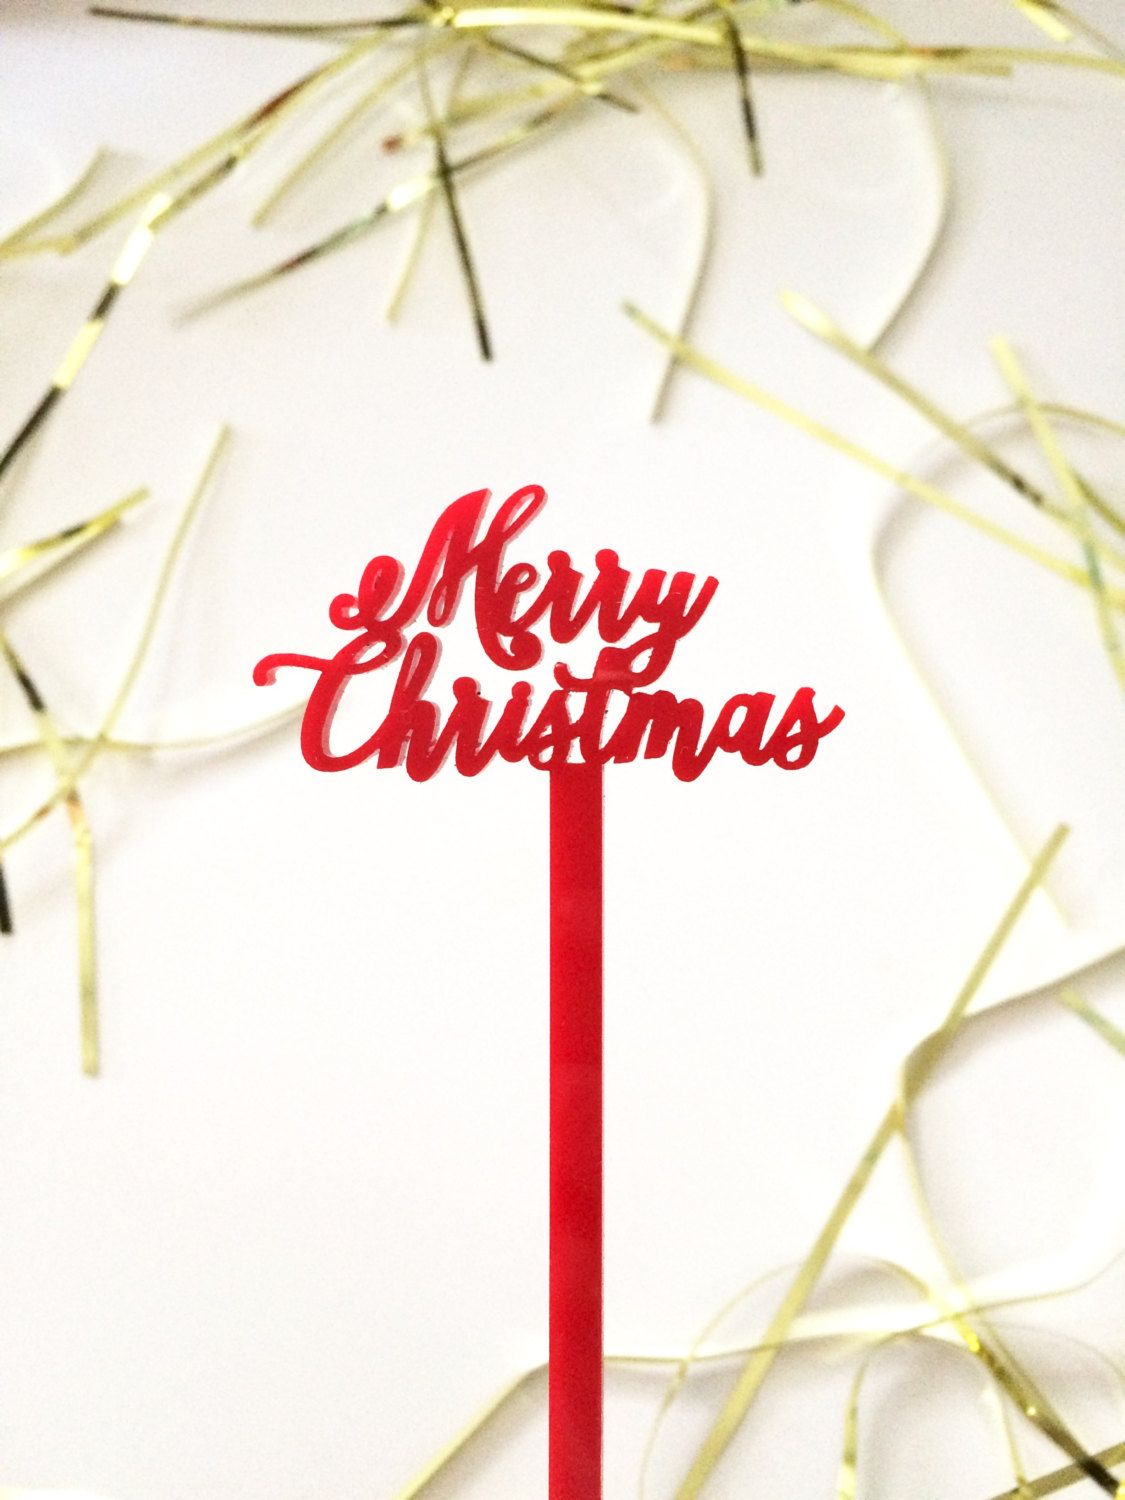 Merry Christmas Swizzle Sticks,Drink Stirrer,Party Decorations ...